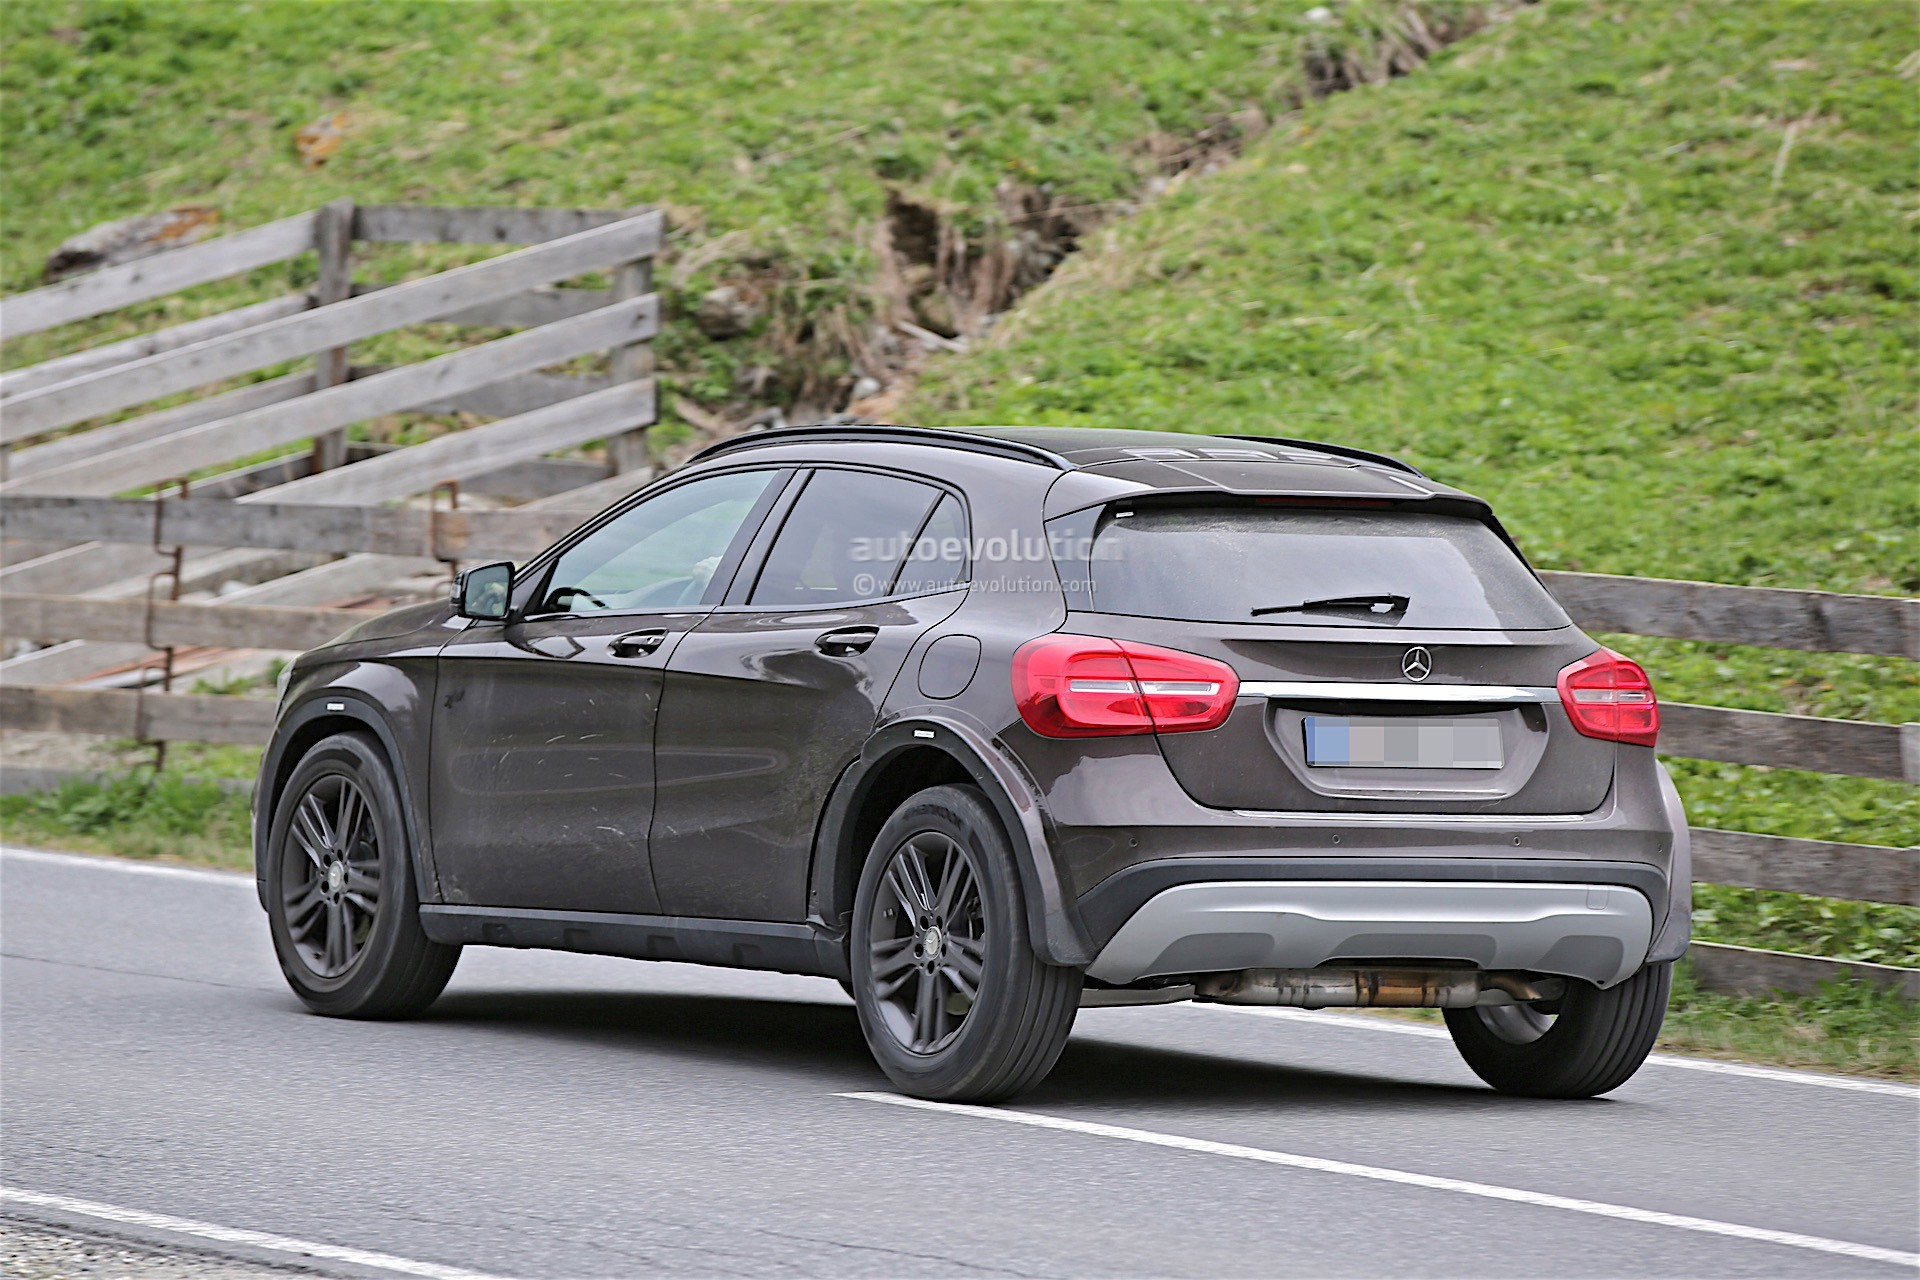 Volvo Suv Used >> Mercedes-Benz Is Testing Upcoming GLB, Spyshots Reveal - autoevolution